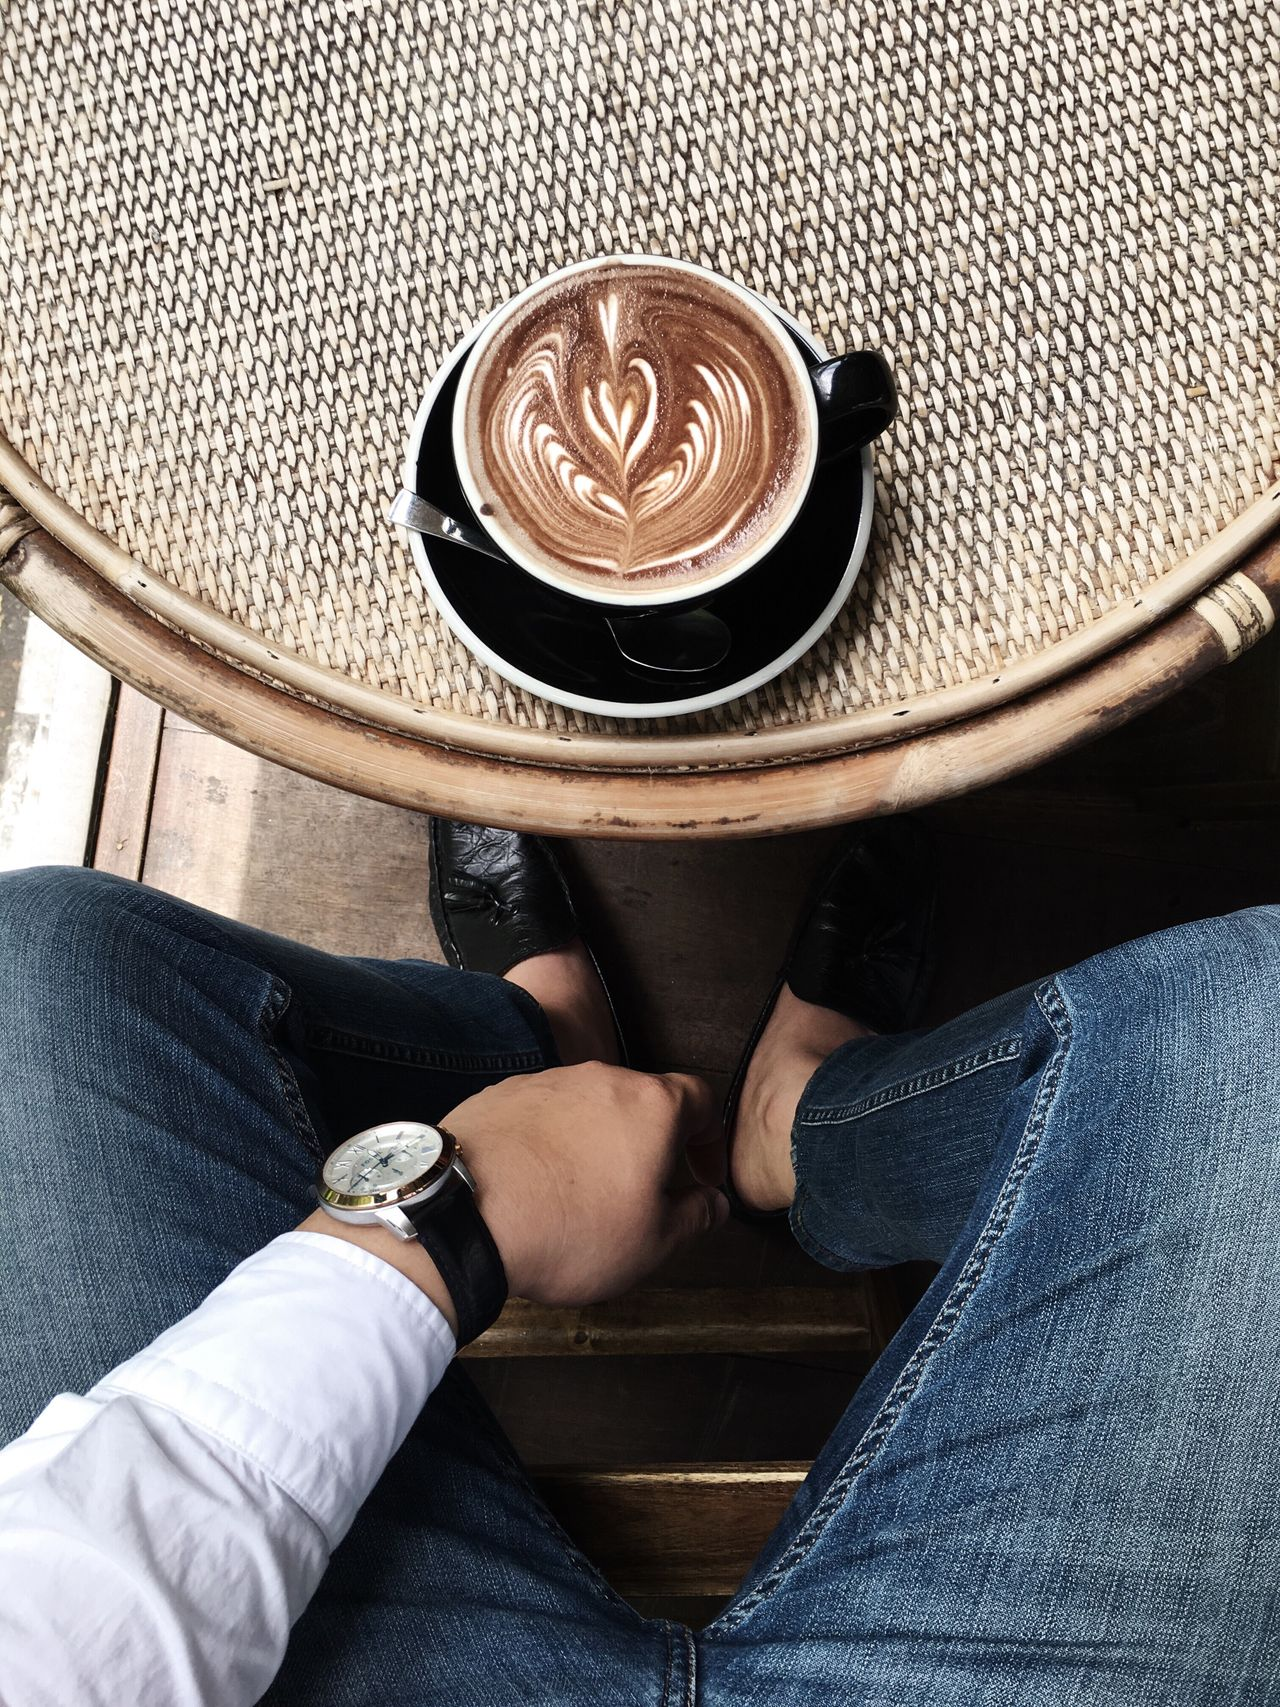 Jeans Sitting Food And Drink Drink Casual Clothing Lifestyles One Person Low Section Indoors  Human Body Part Leisure Activity Women Human Leg Refreshment Real People Table Men Adults Only Adult Close-up Coffee